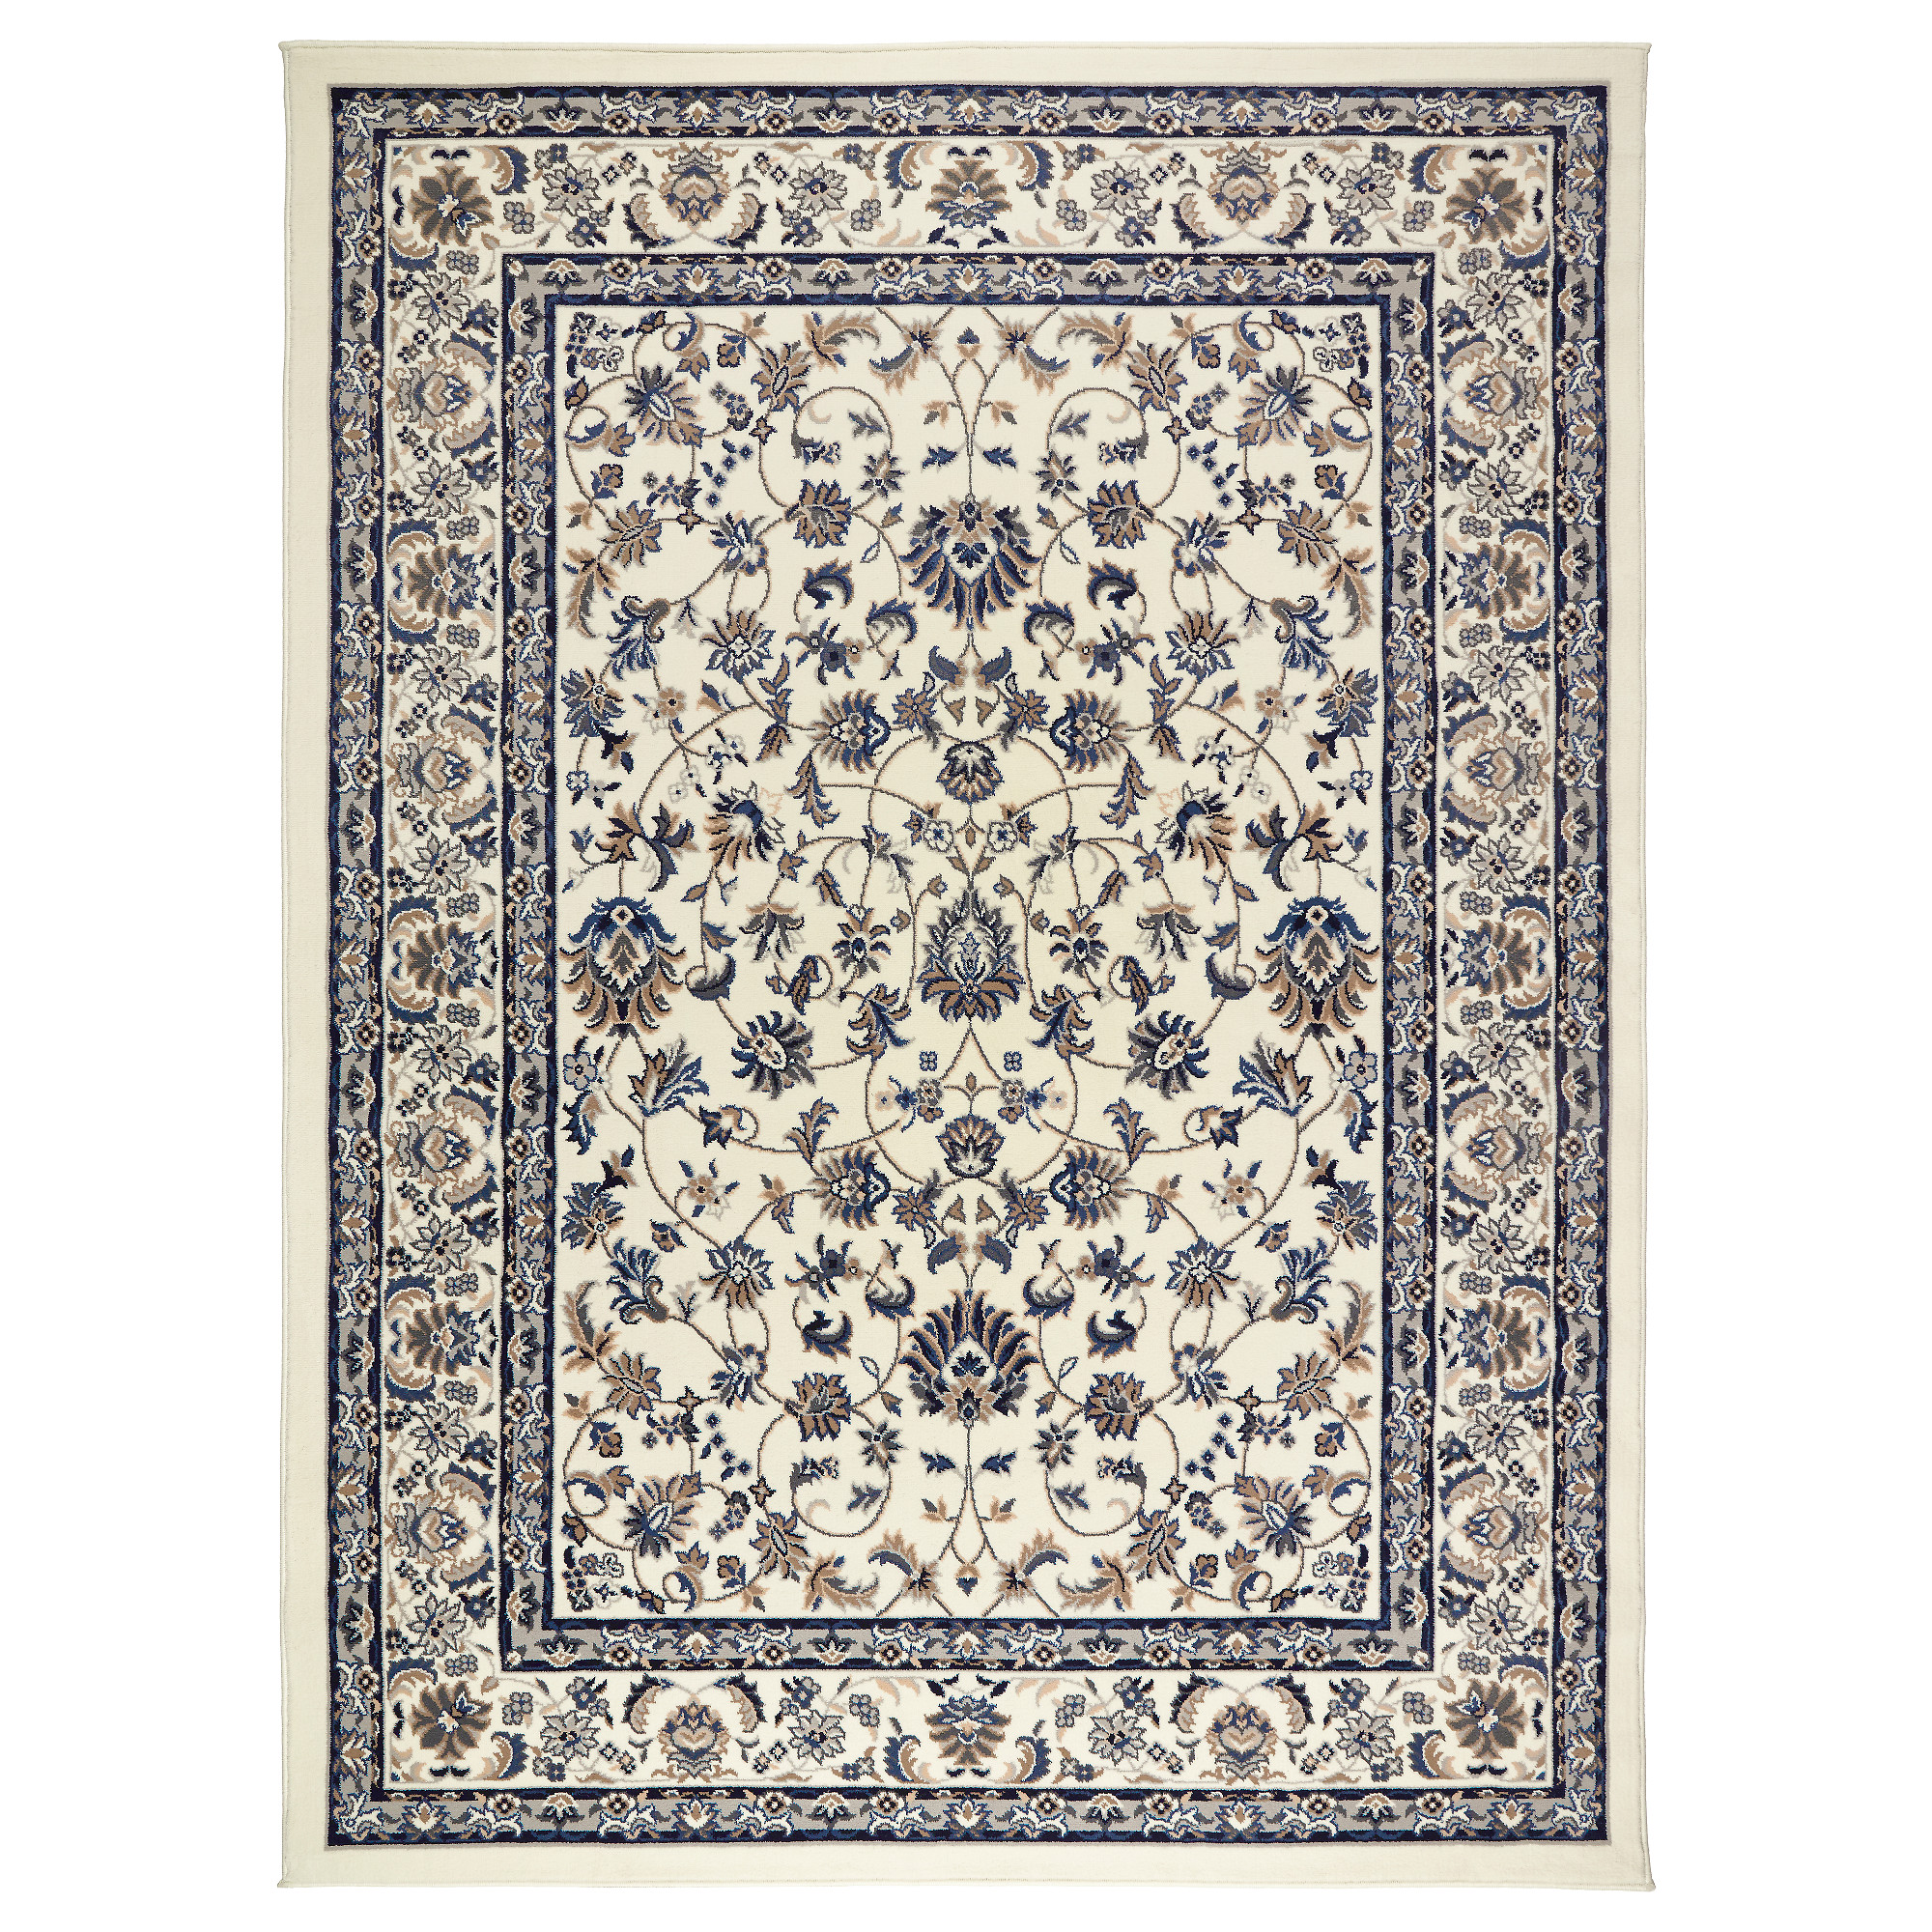 . VALL BY Rug  low pile   5   7  x7   7     IKEA